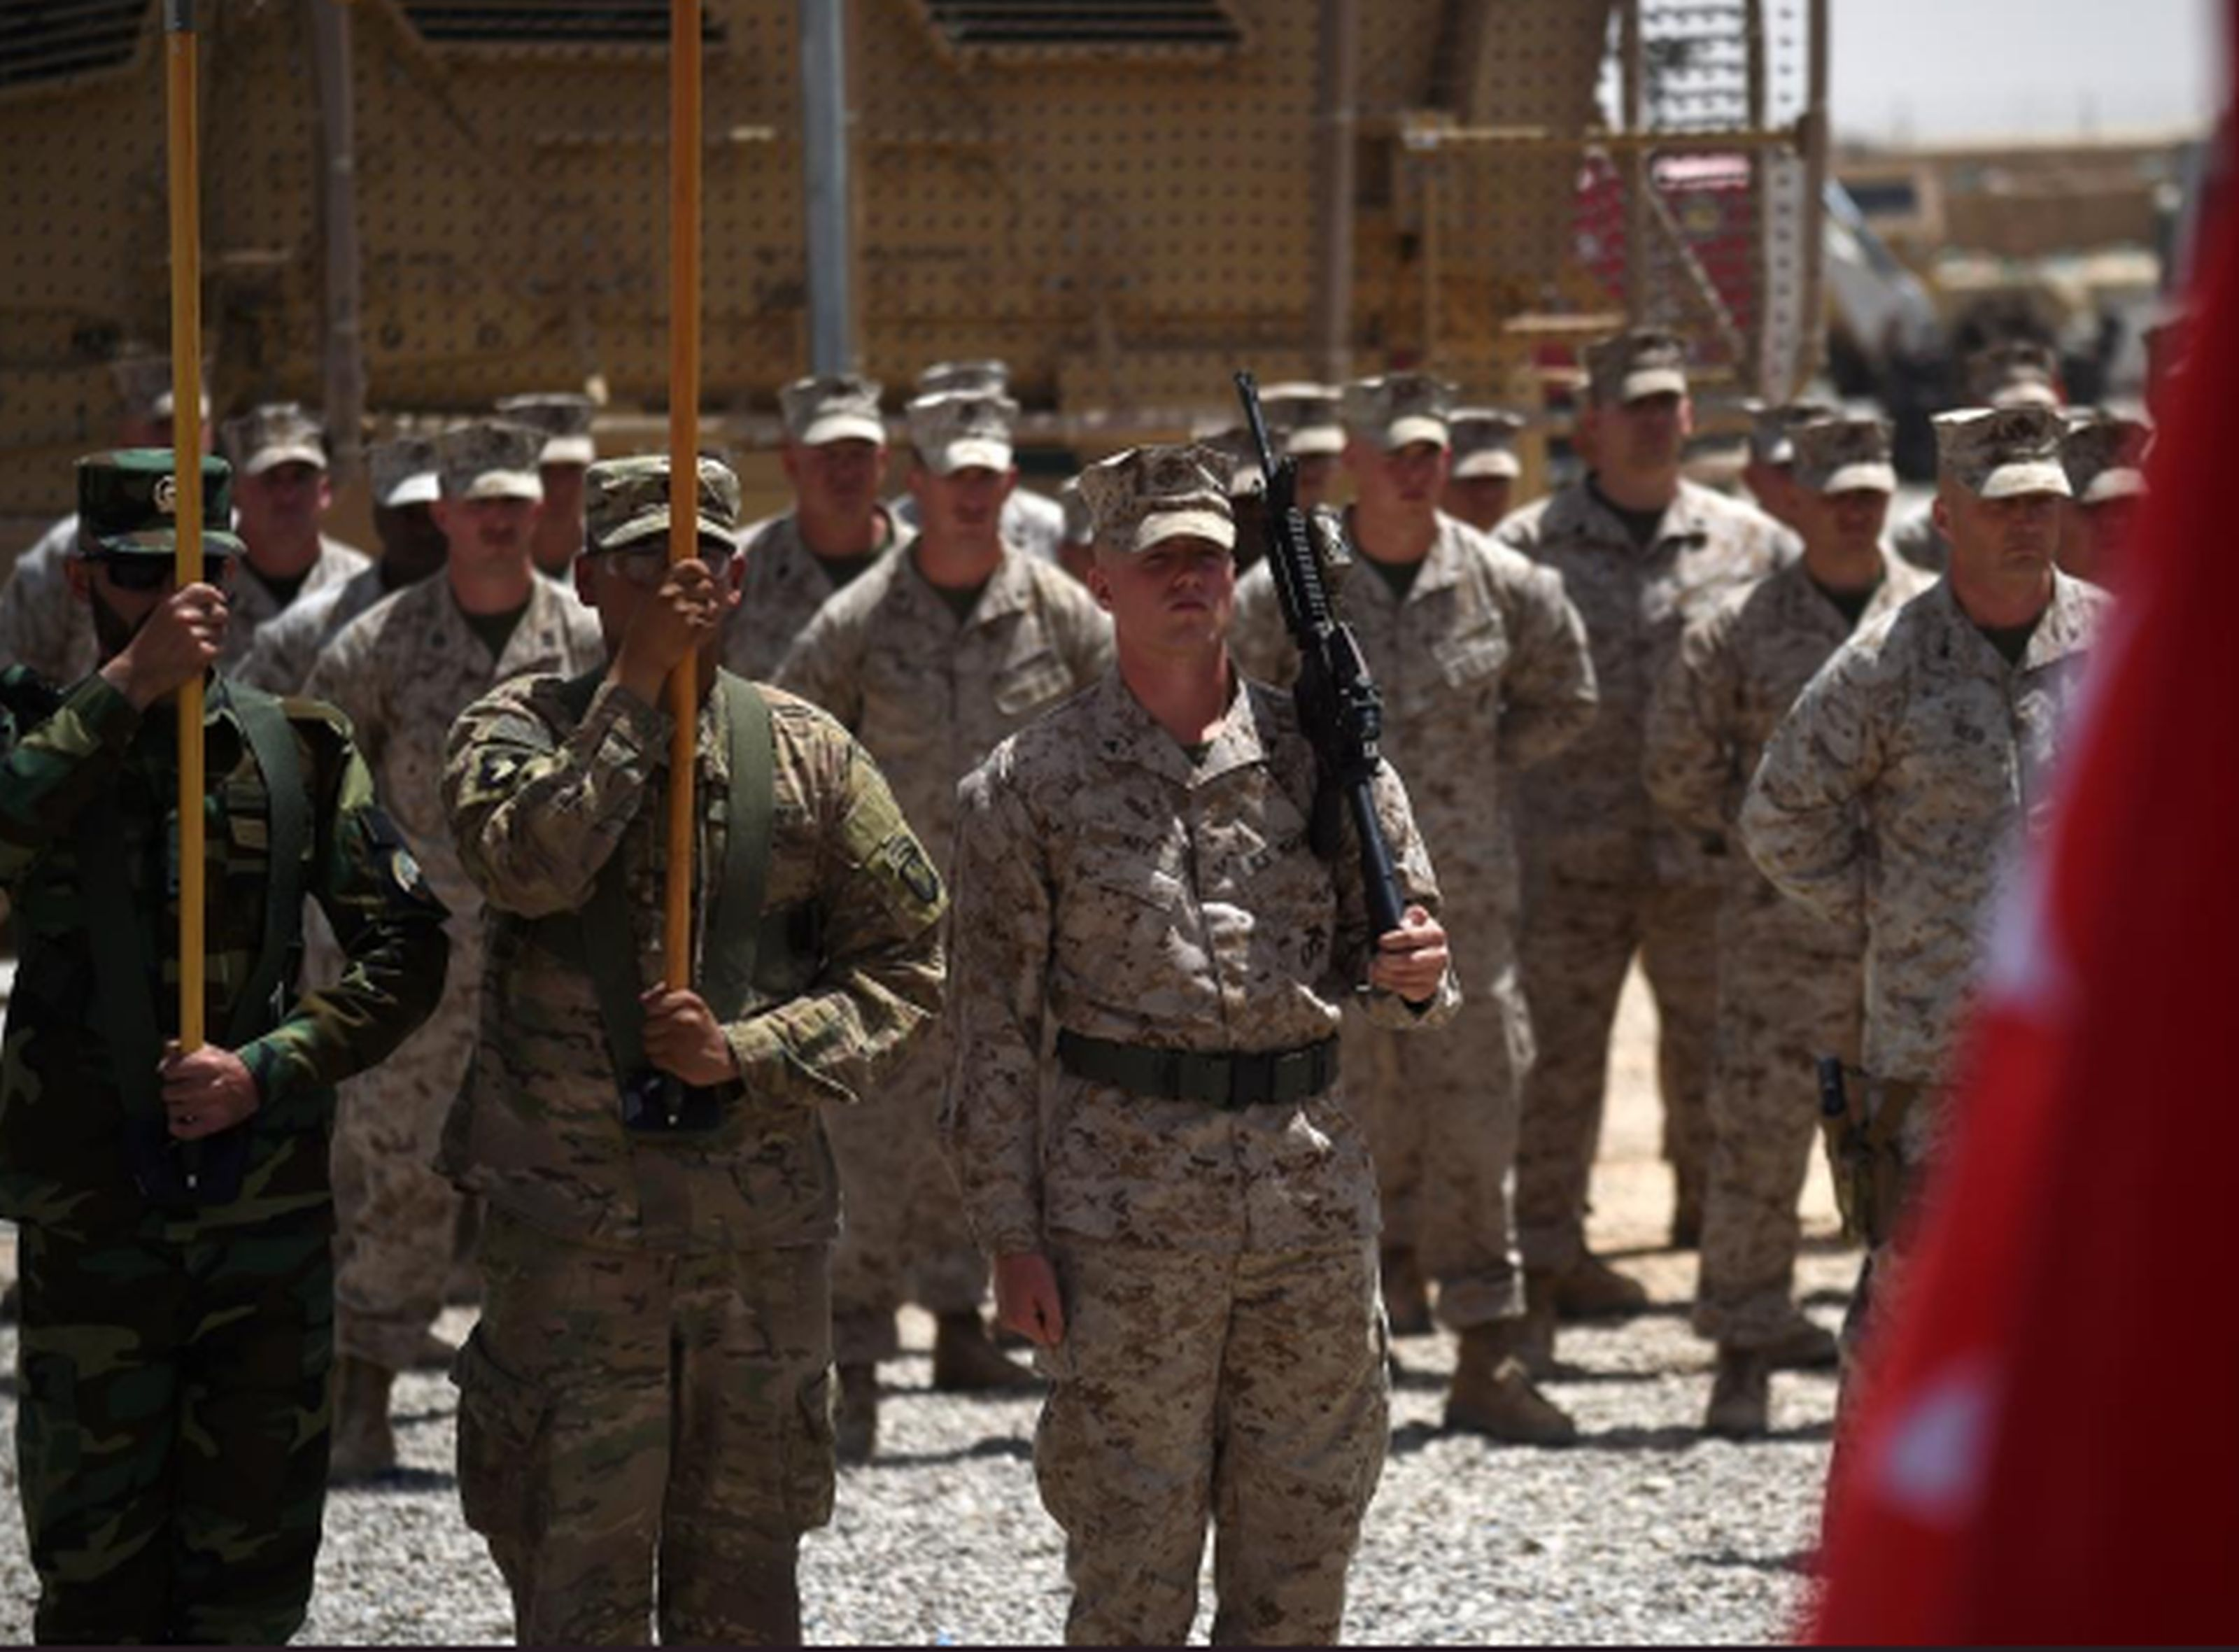 U.S. Marines and Afghan National Army soldiers at a handover ceremony at Leatherneck Camp in Afghanistan's Helmand Province on April 29. AP WIREPHOTO